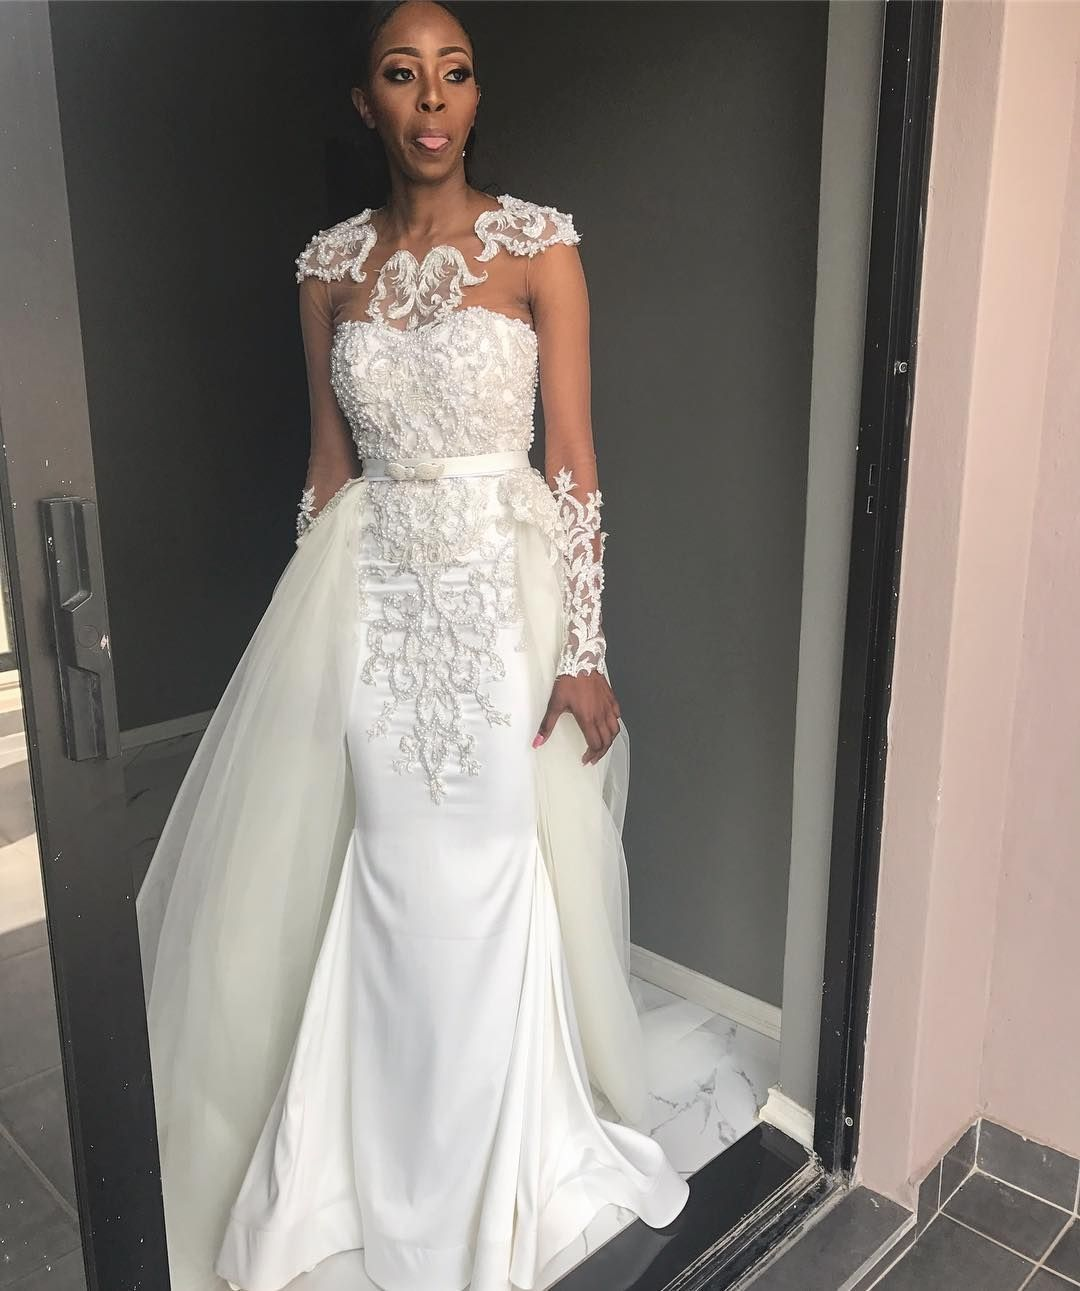 Love At First Sight Orapeleng Modutle S Dresses Will Blow Your Mind Wedding Digest Naija Corset Mermaid Wedding Dress Dresses Cheap Wedding Dress,Macy Dresses For Weddings